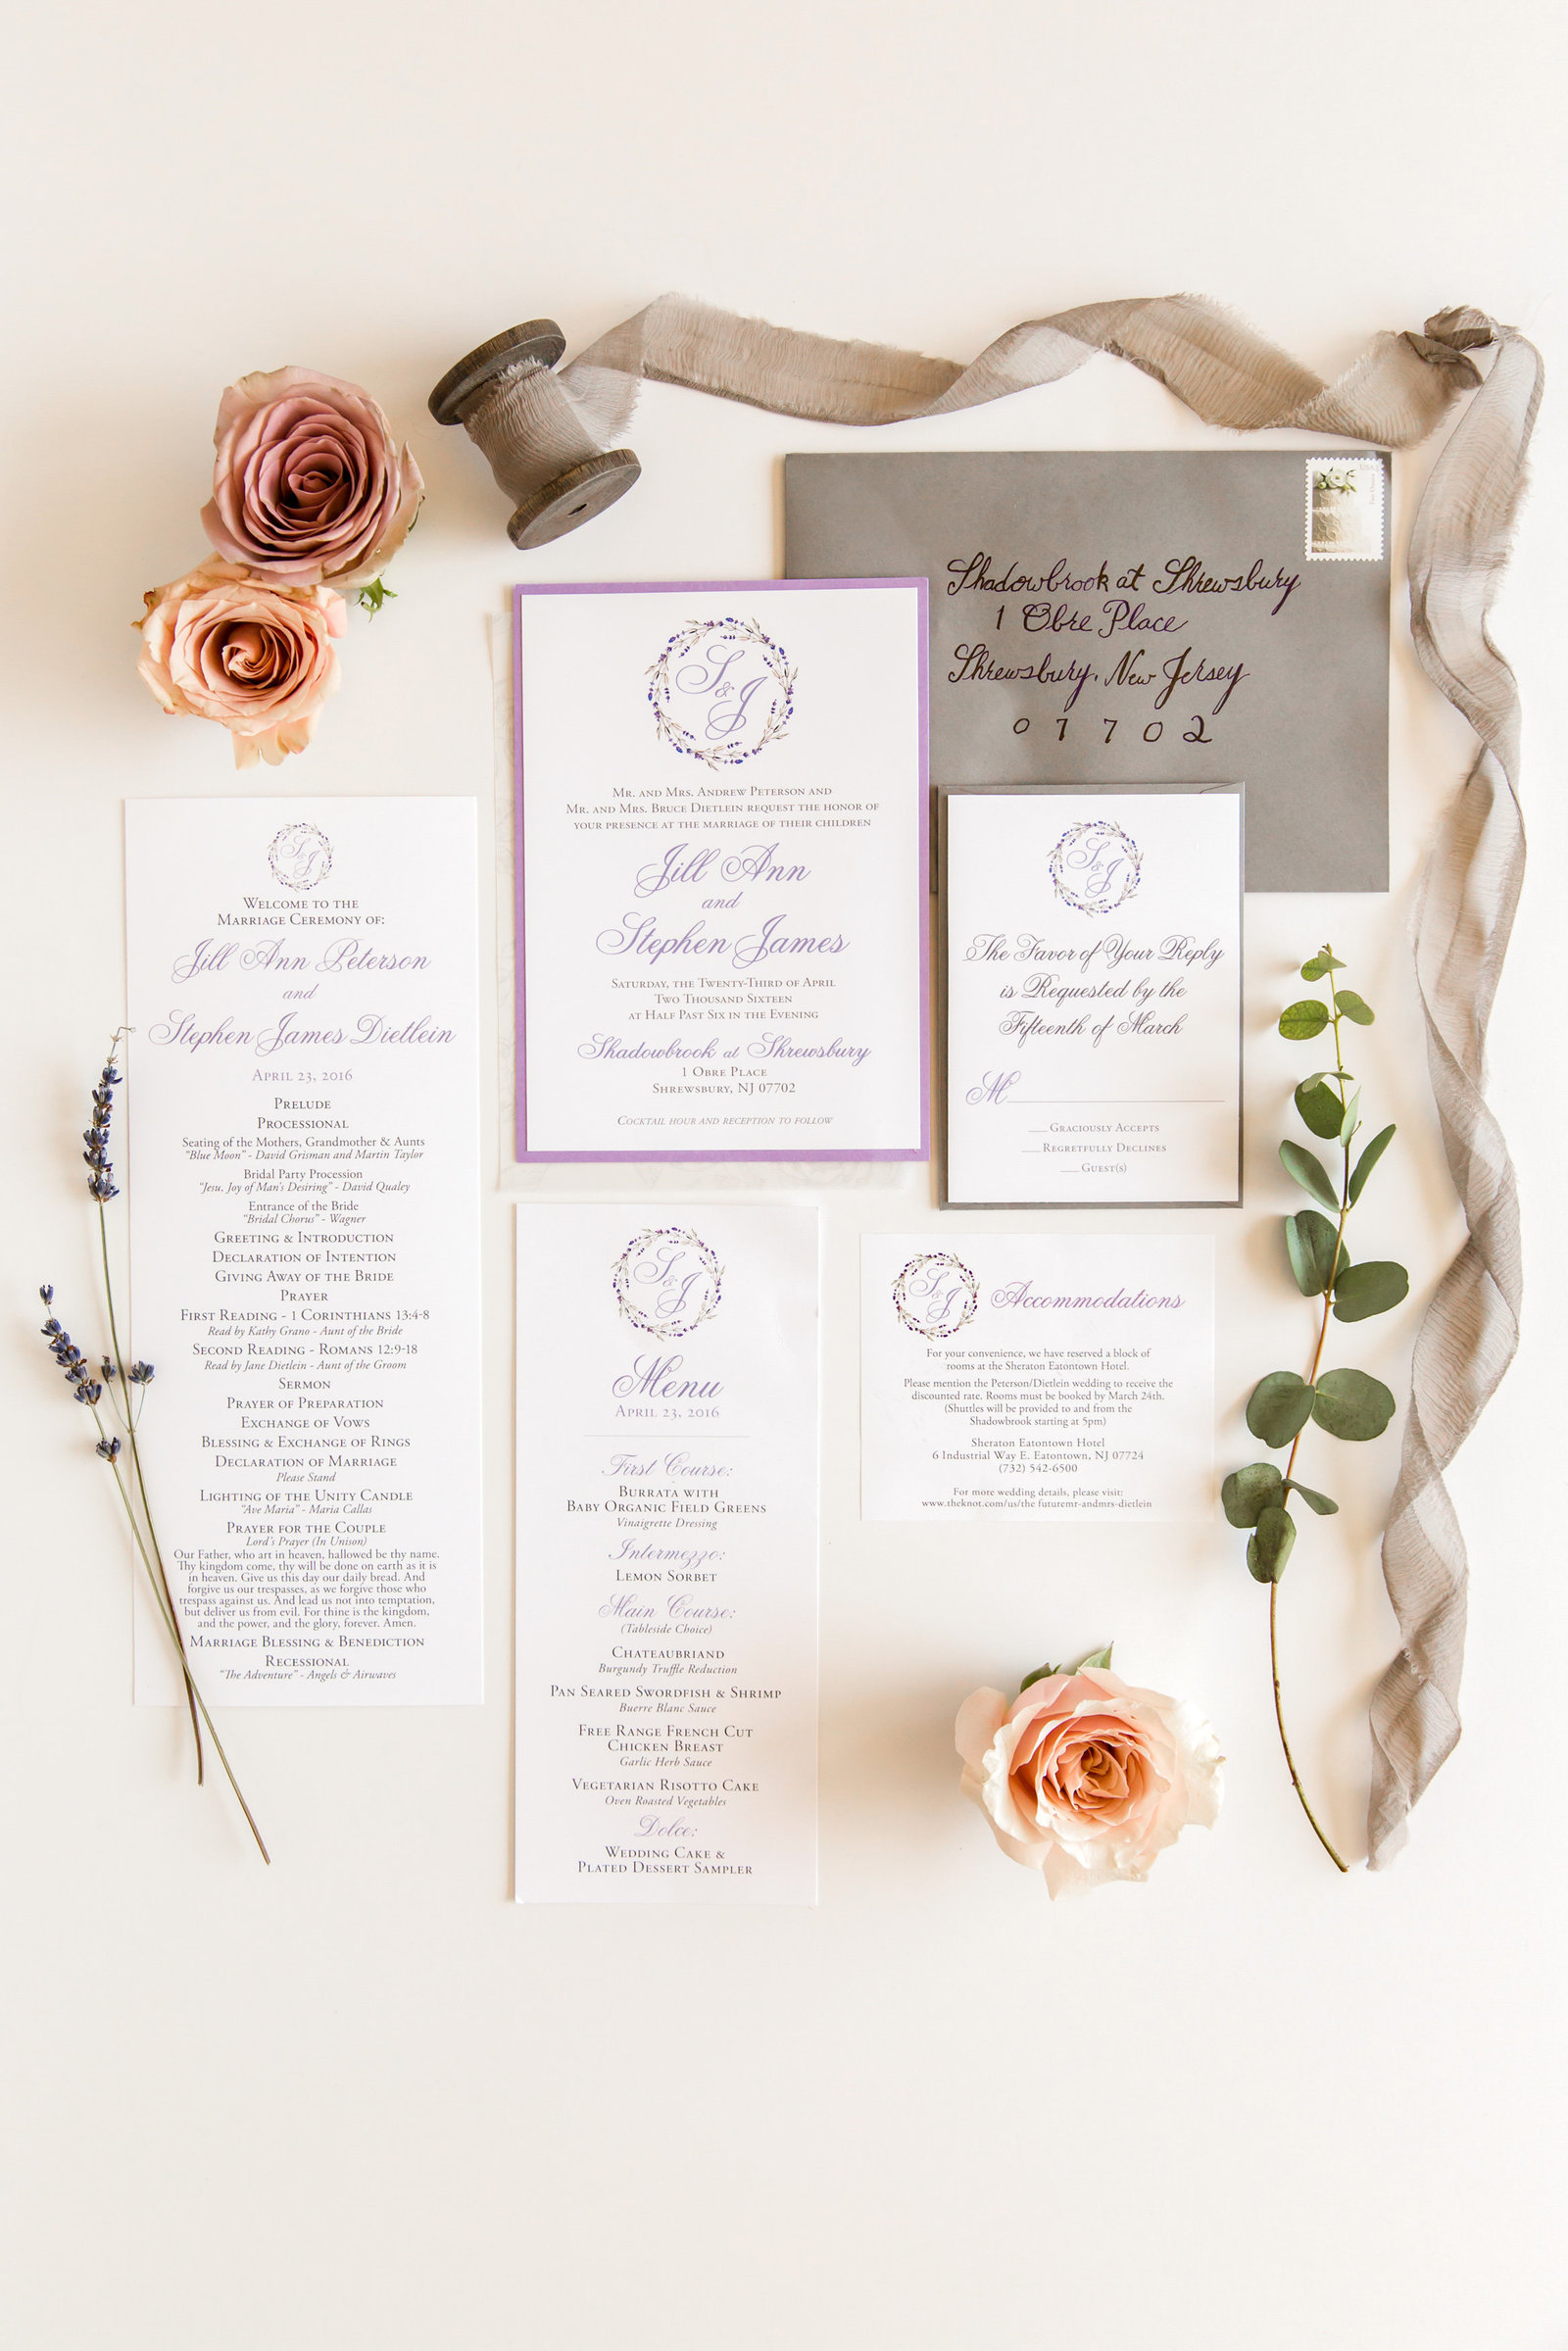 Invitation for a classic purple and gray wedding